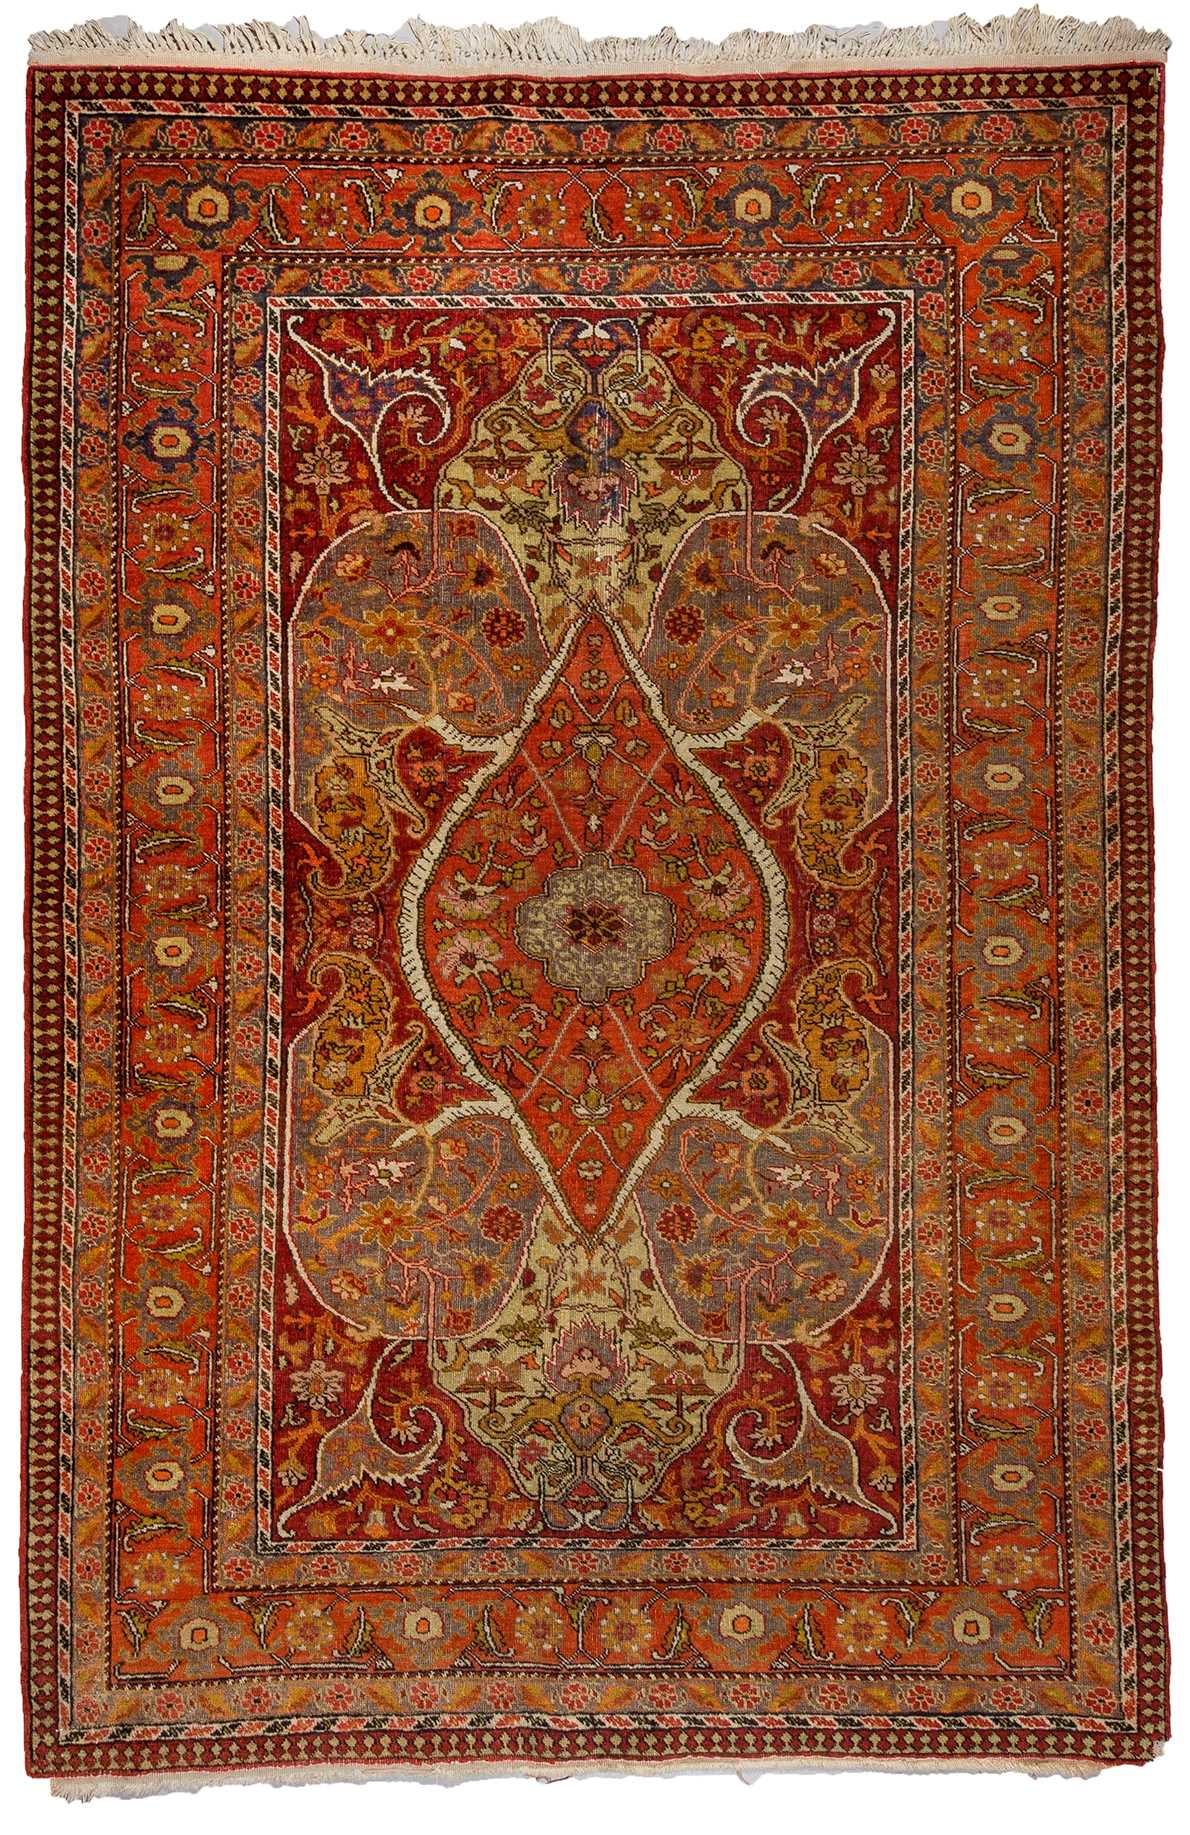 Antique Turkish Rug Antique Rug Anatolian Rugs 5865